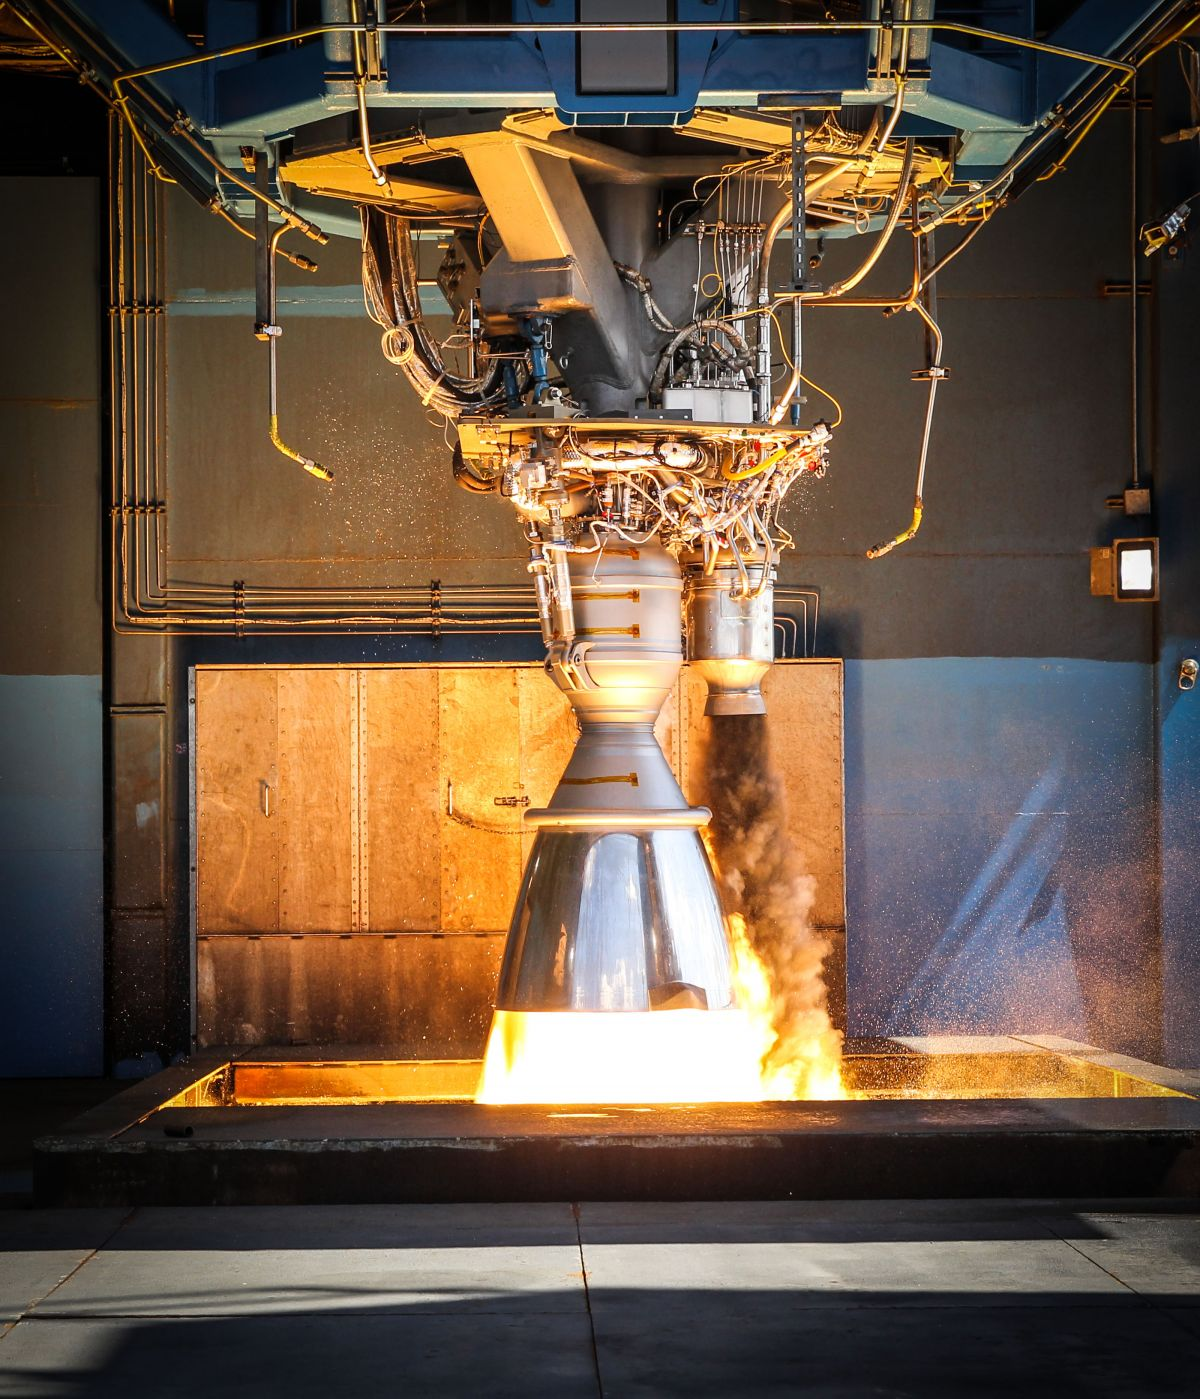 A working Merlin engine. Image credit: SpaceX